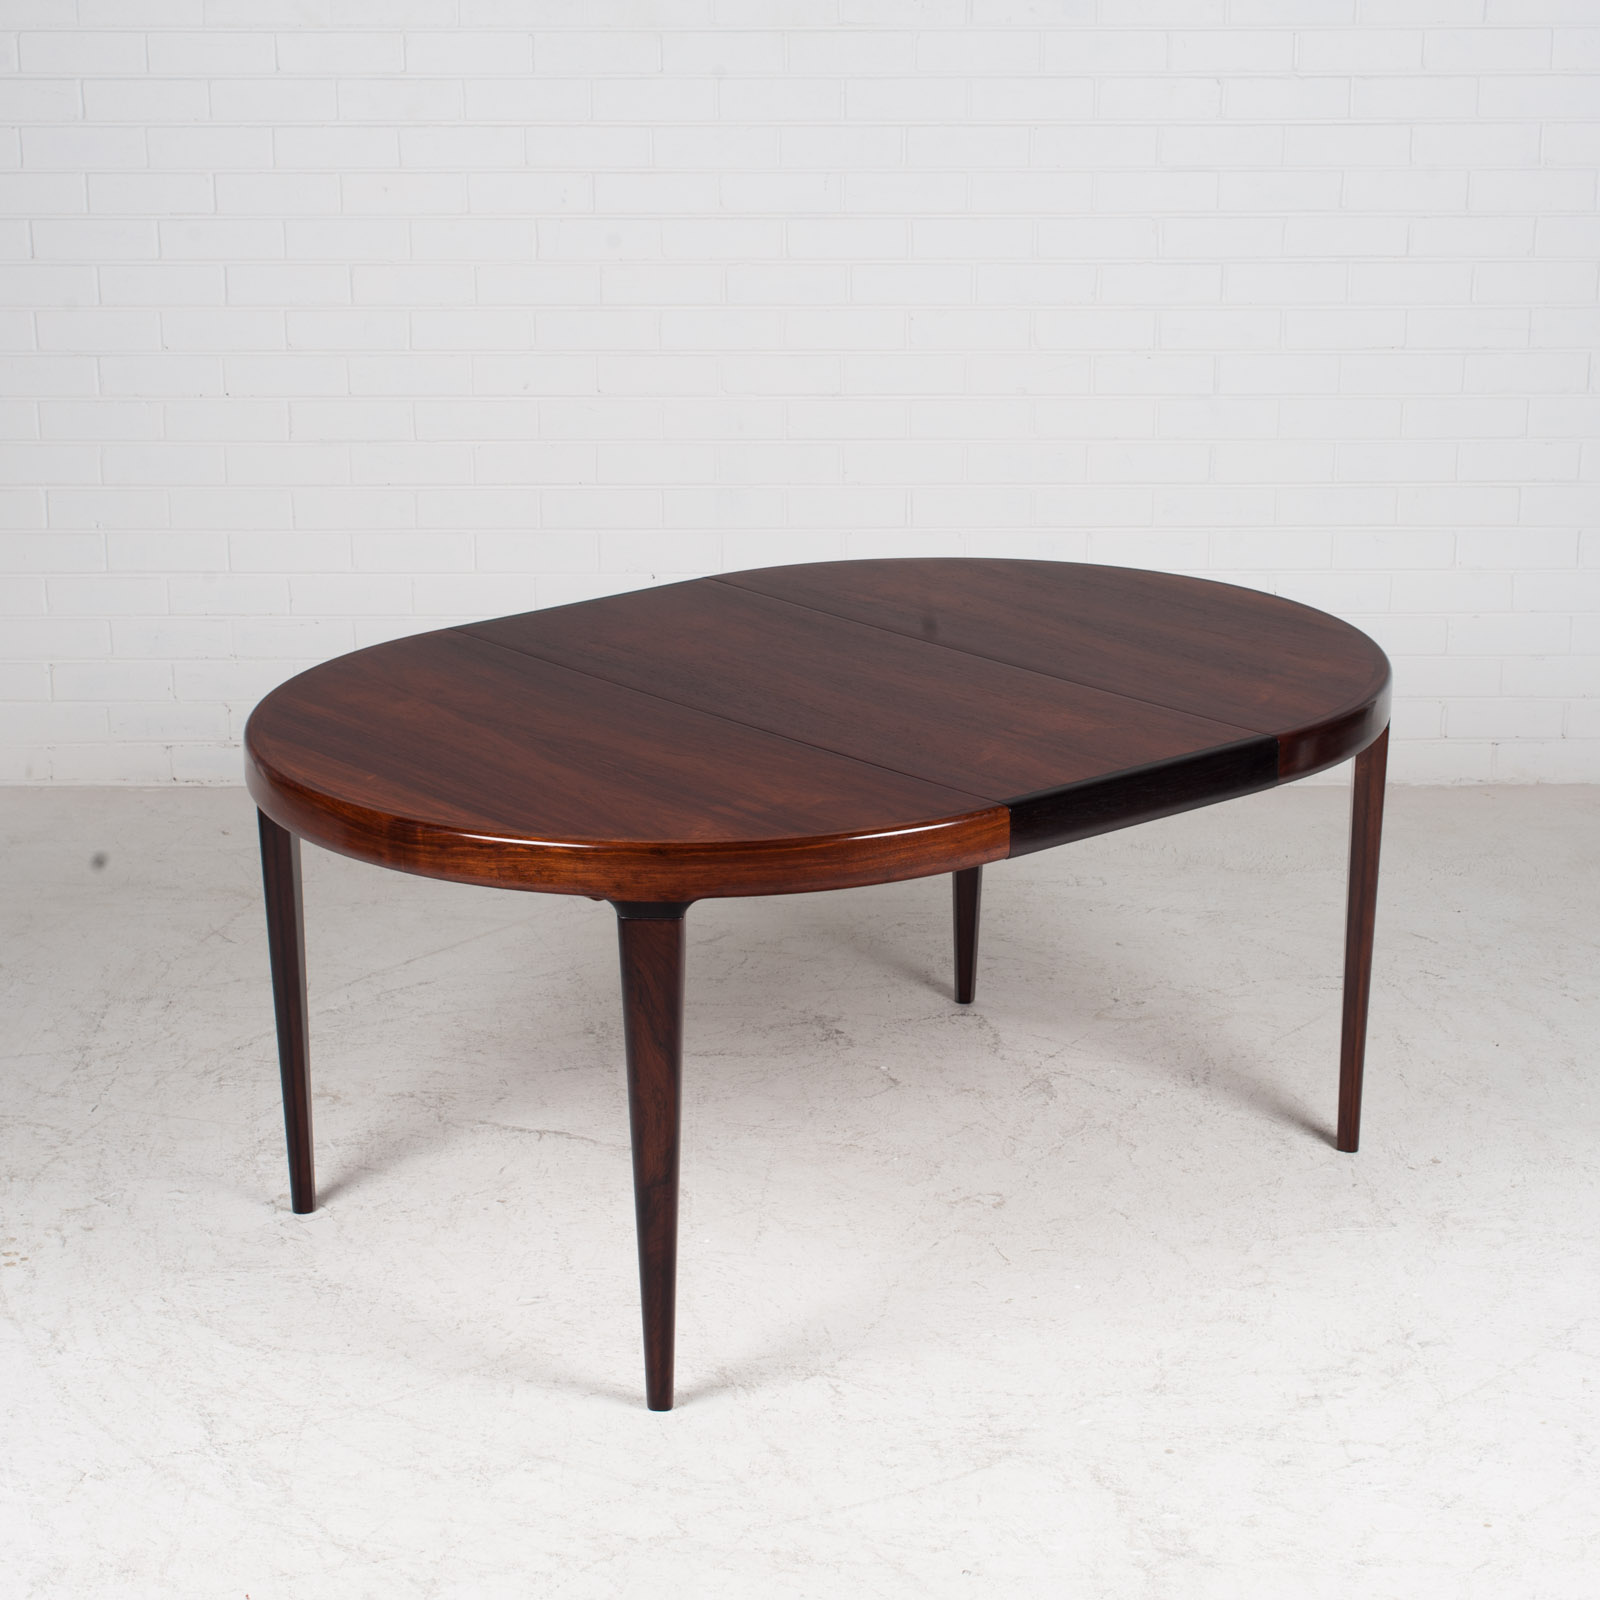 Round Dining Table By Johannes Andersen For Uldum In